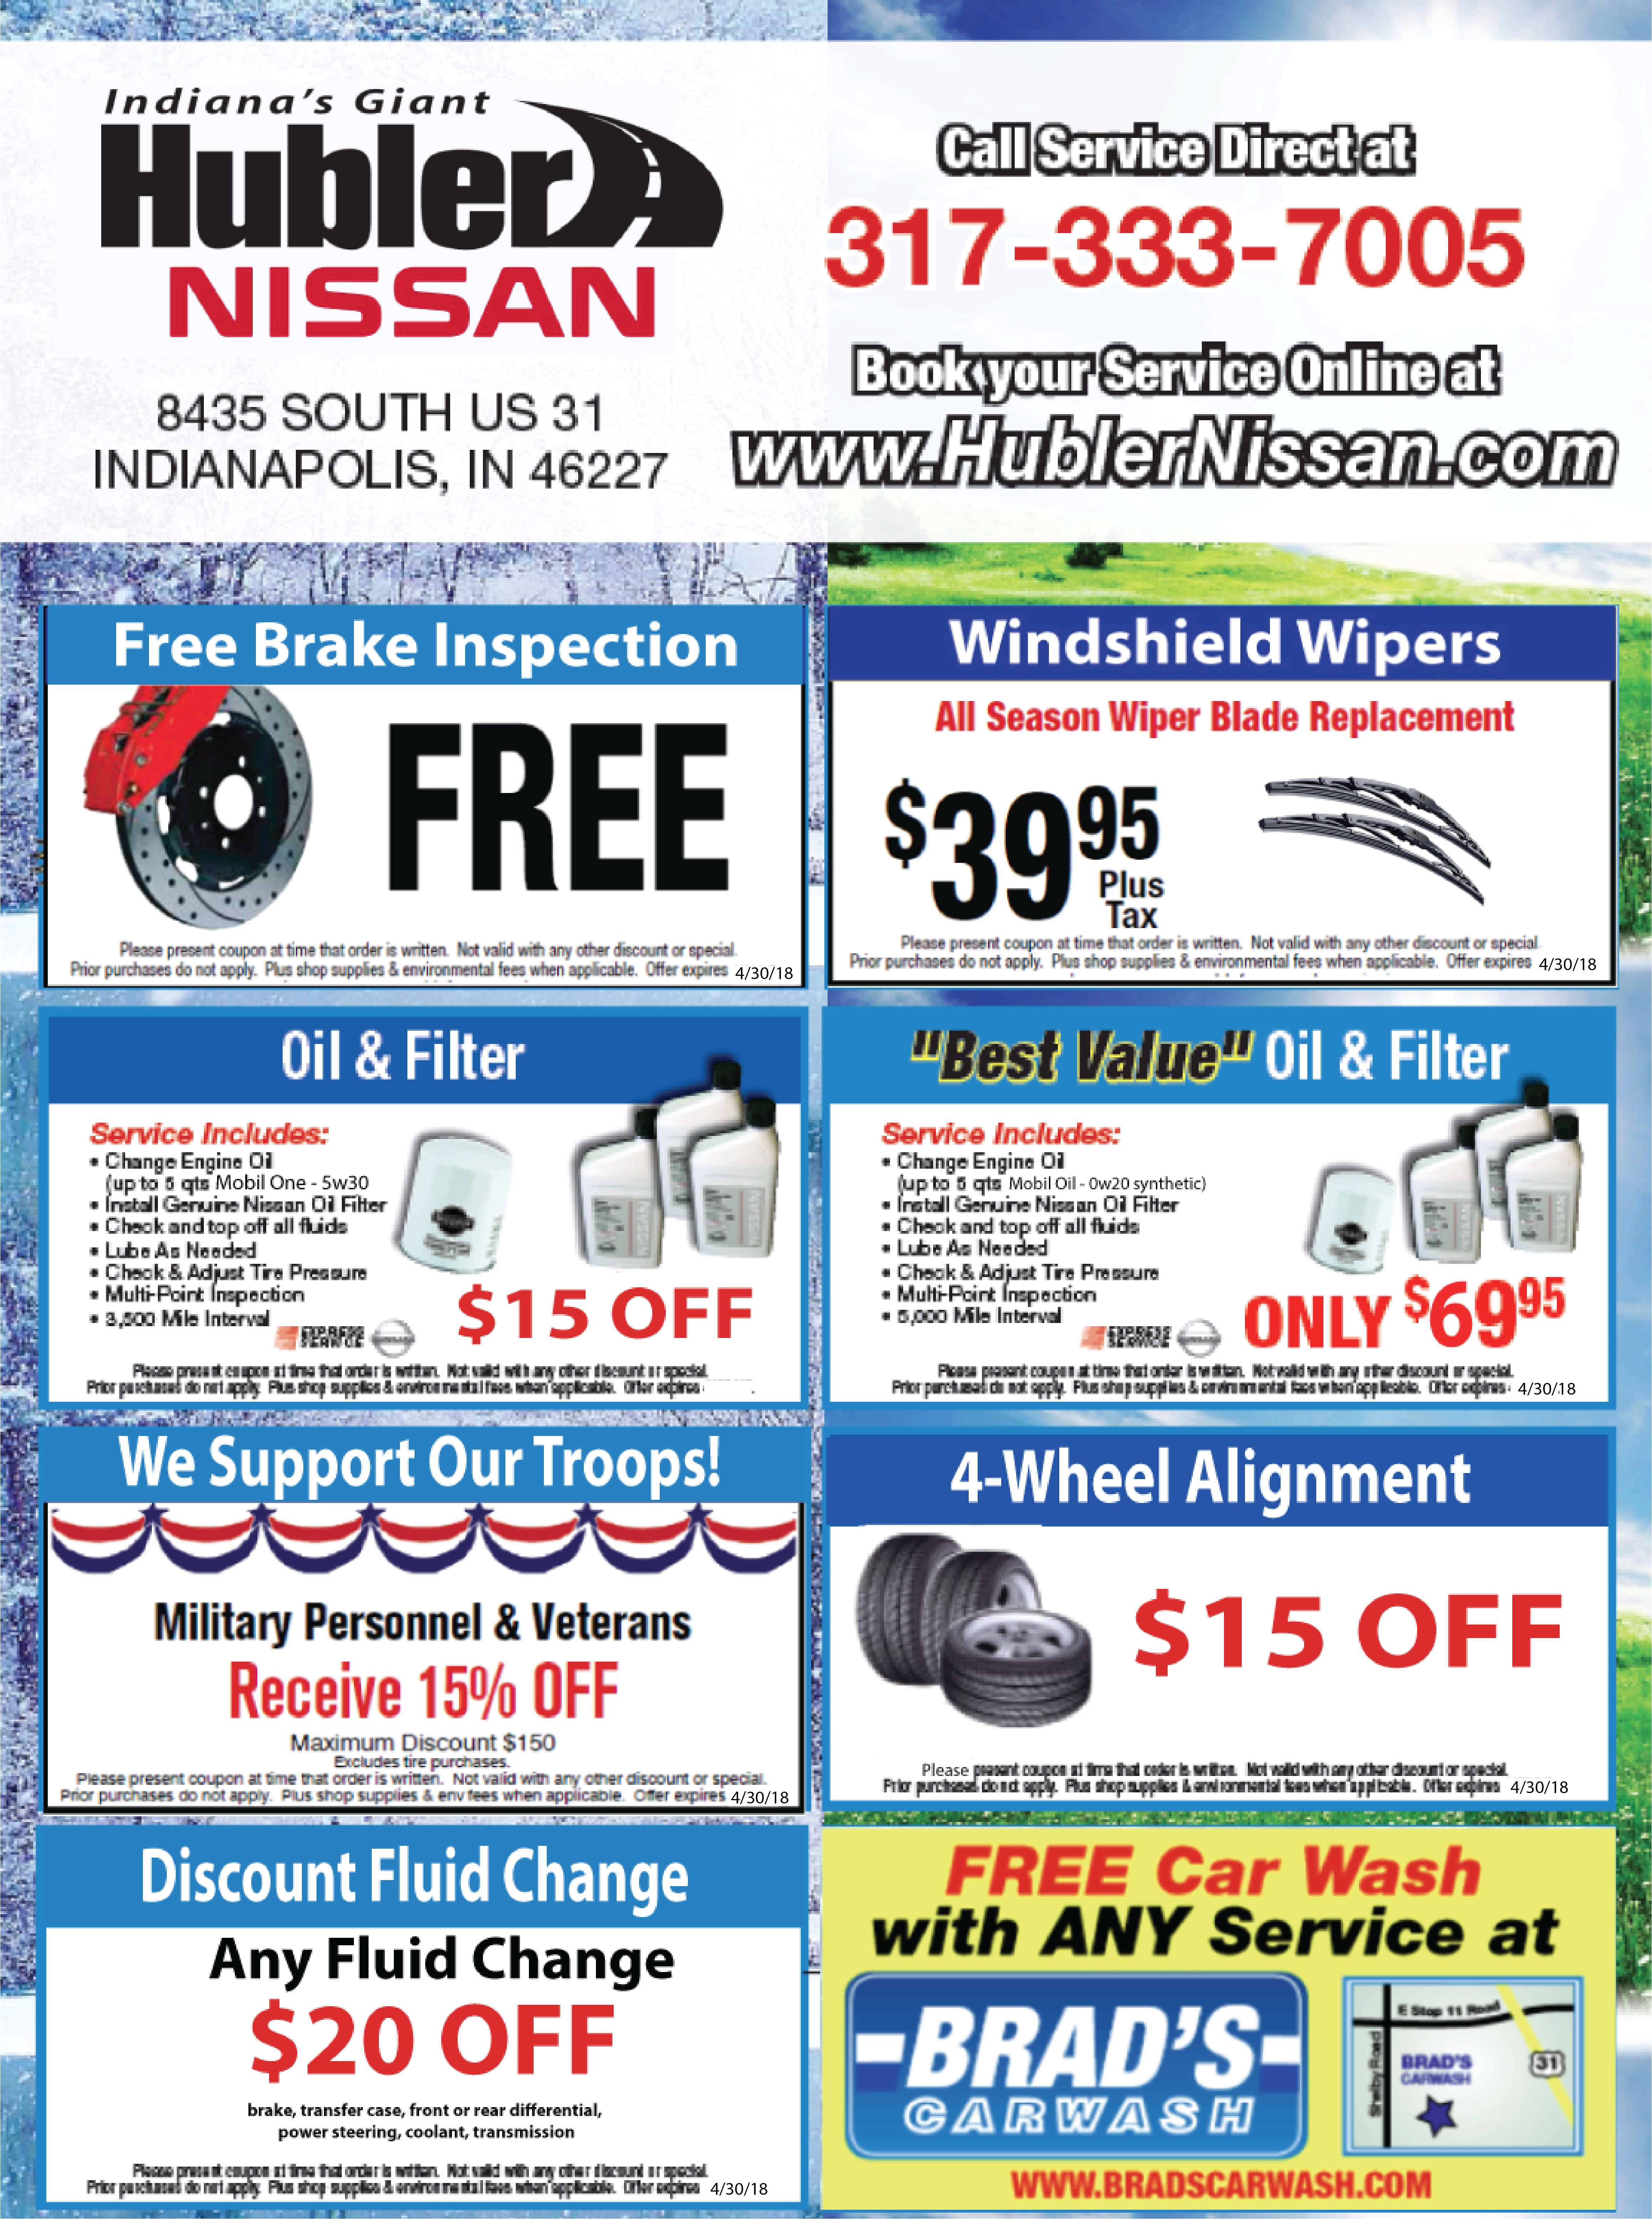 Toyota Oil Change Coupons >> Nissan Service Coupons | Low Prices on Nissan Car Repairs ...